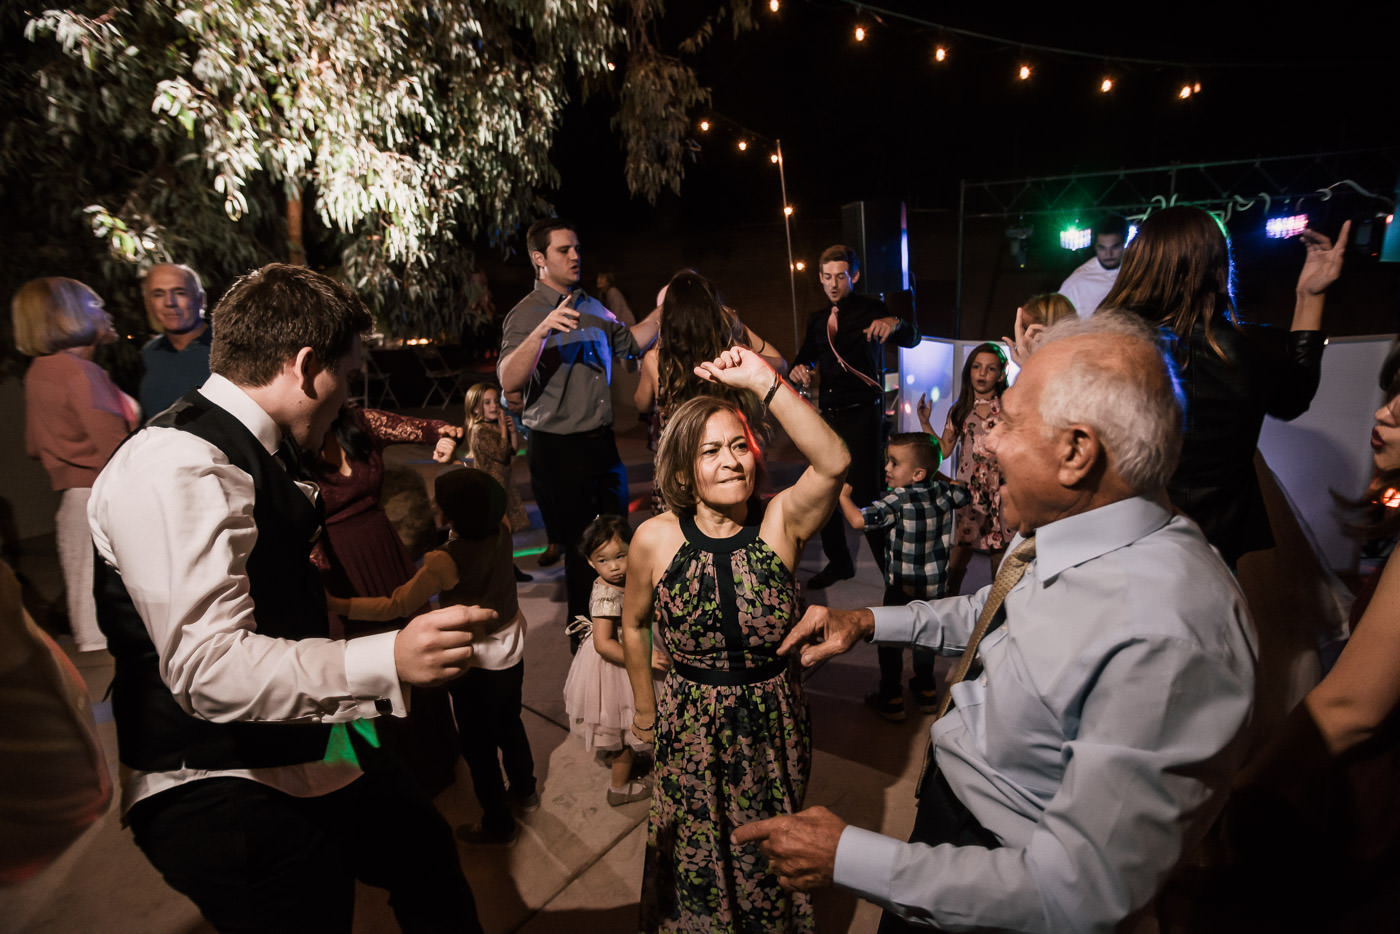 Guests tear up the dance floor as the Dj plays at this Temecula wedding reception.